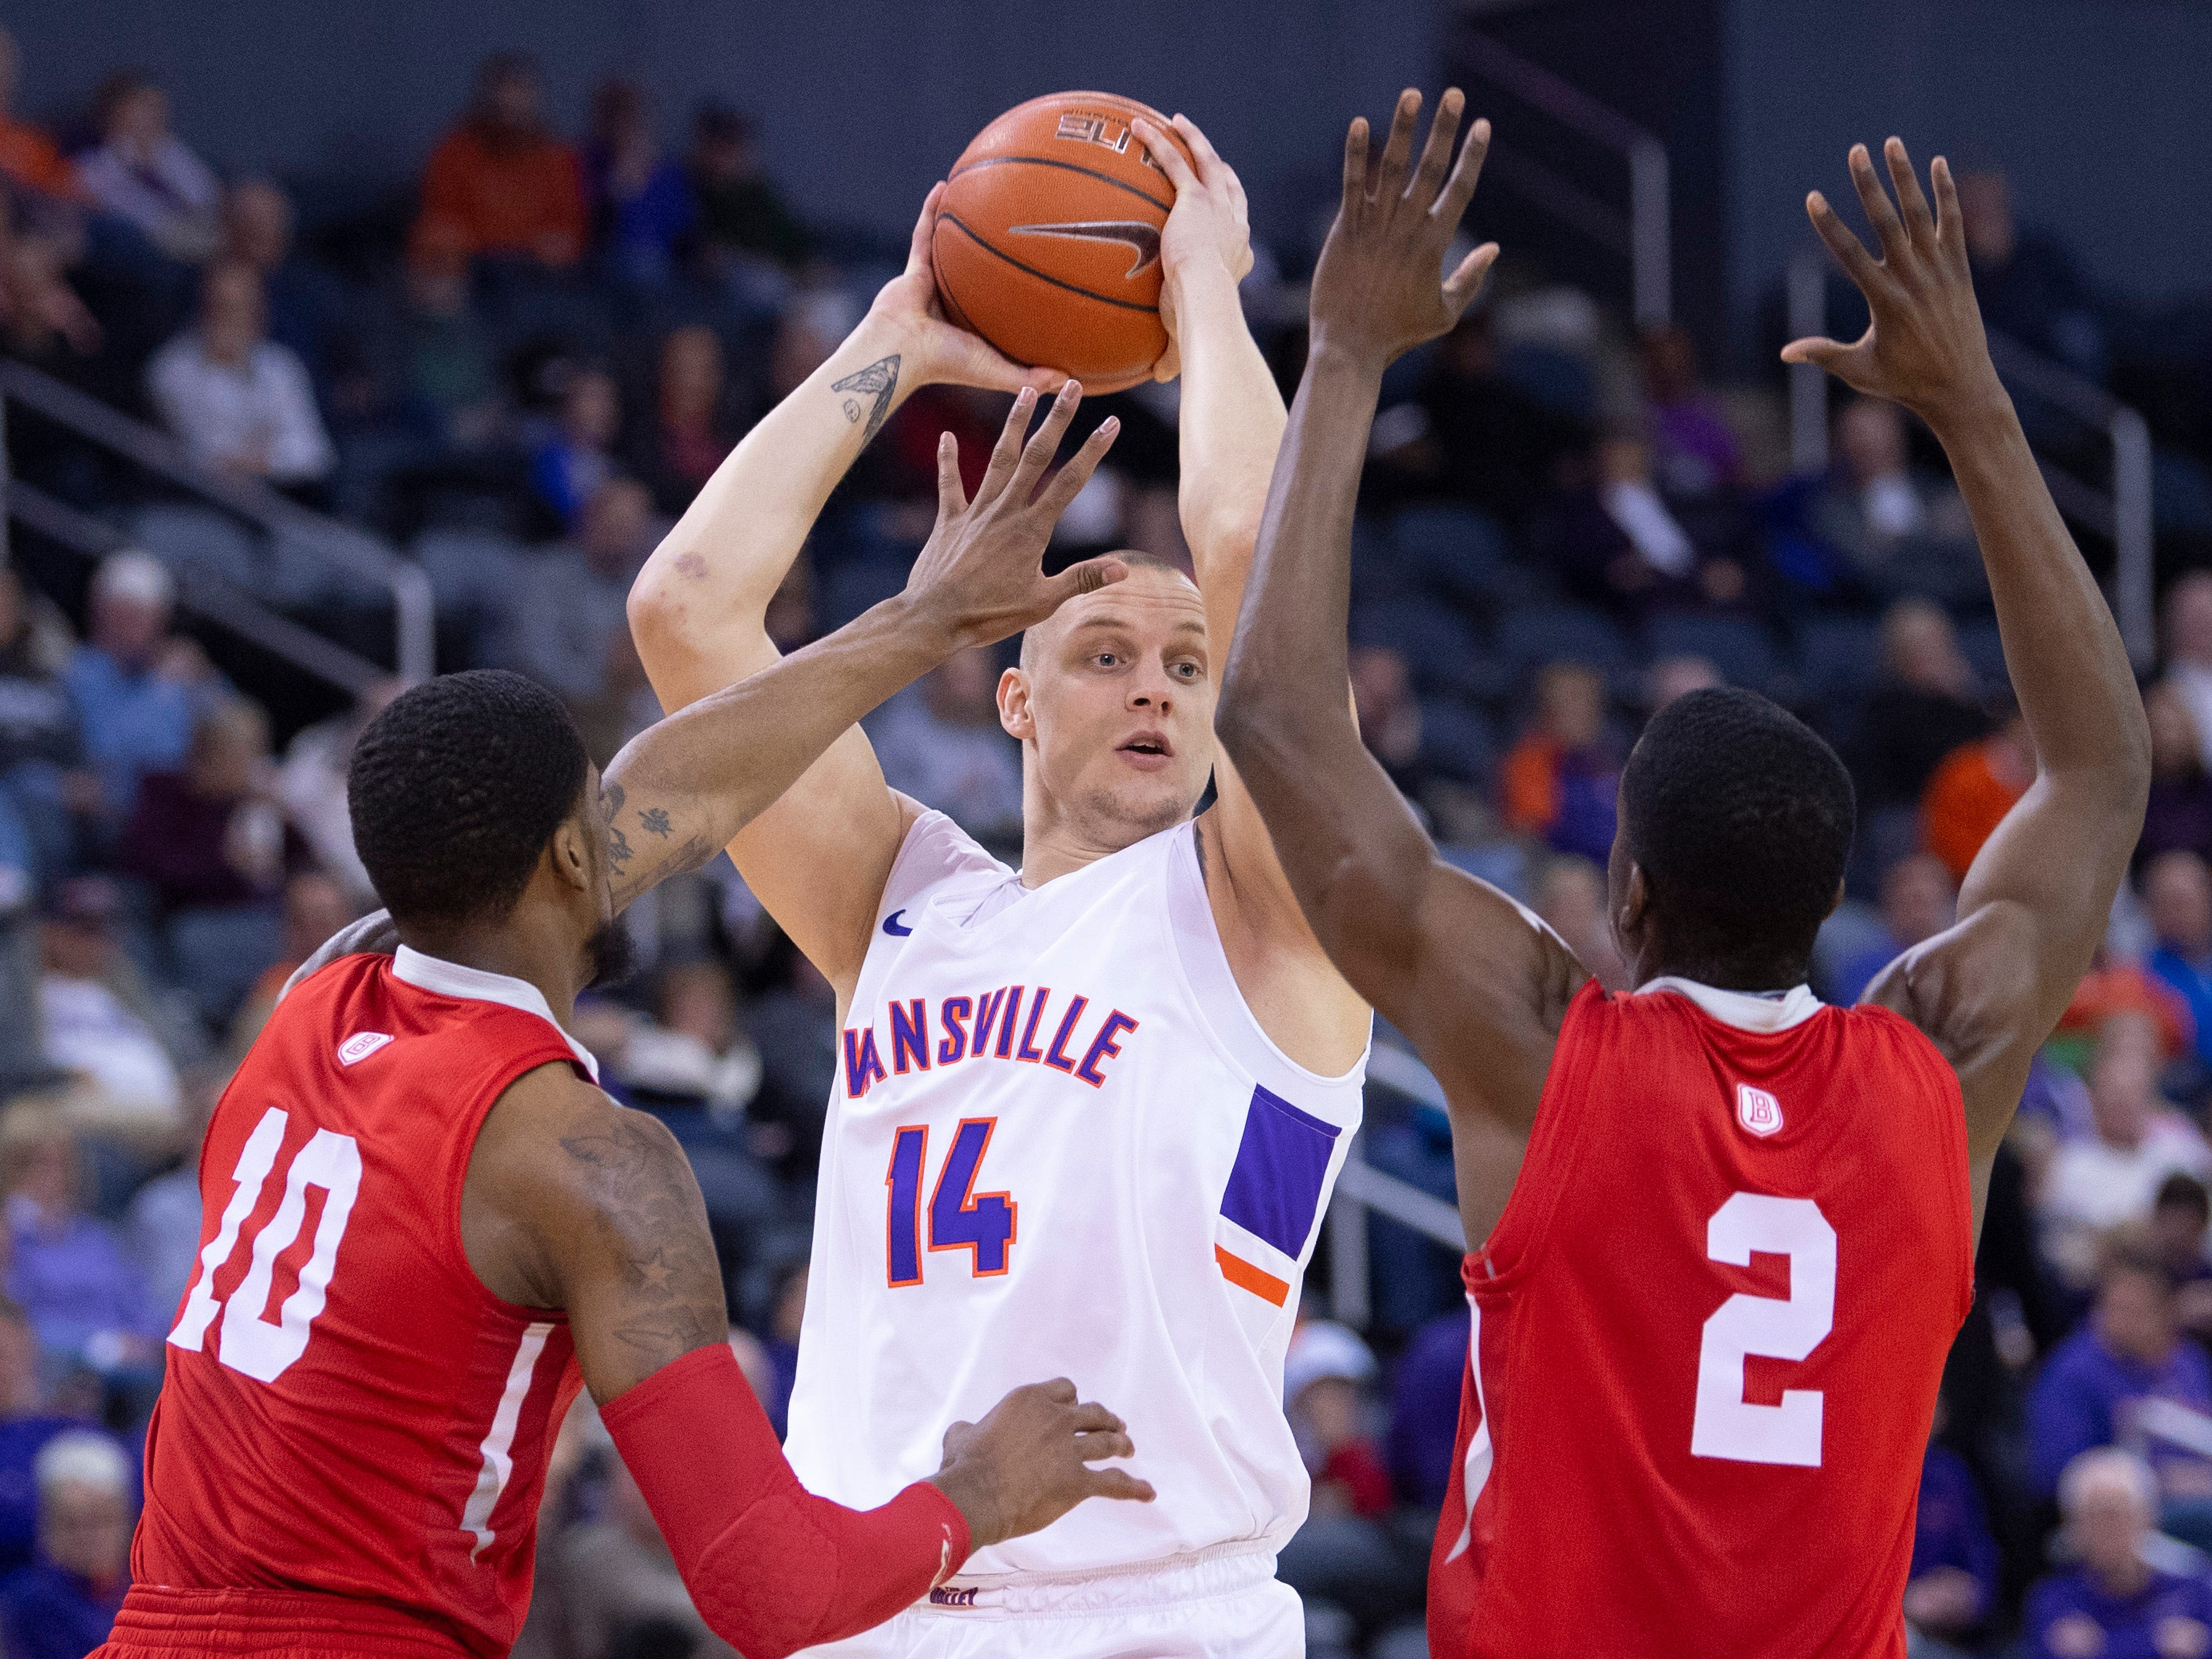 Evansville's Dainius Chatkevicius (14) looks to pass while being guarded by Bradley's Elijah Childs (10) and Luqma  Lundy (2) during their game at the Ford Center Wednesday night.